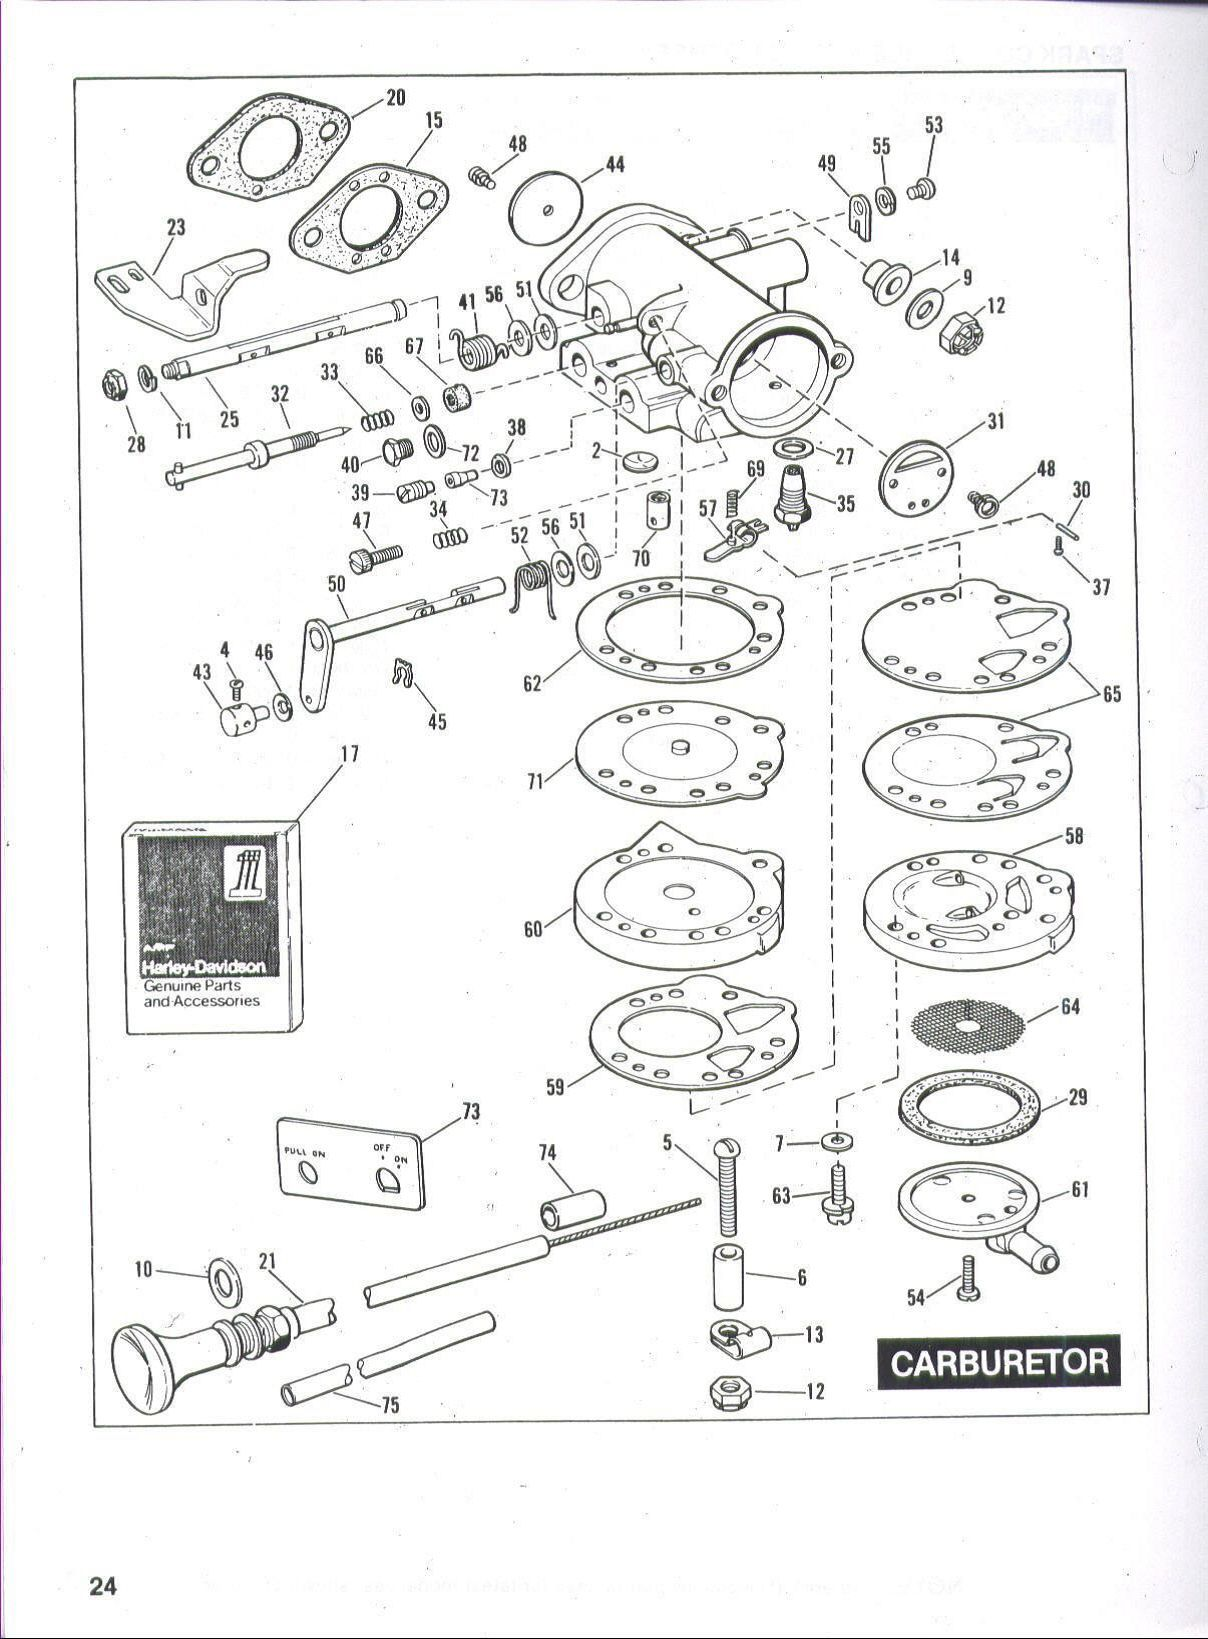 Harley Davidson Golf Cart Carburetor Diagram Utv Stuff Pinterest Wiring Guide Off Road Carts